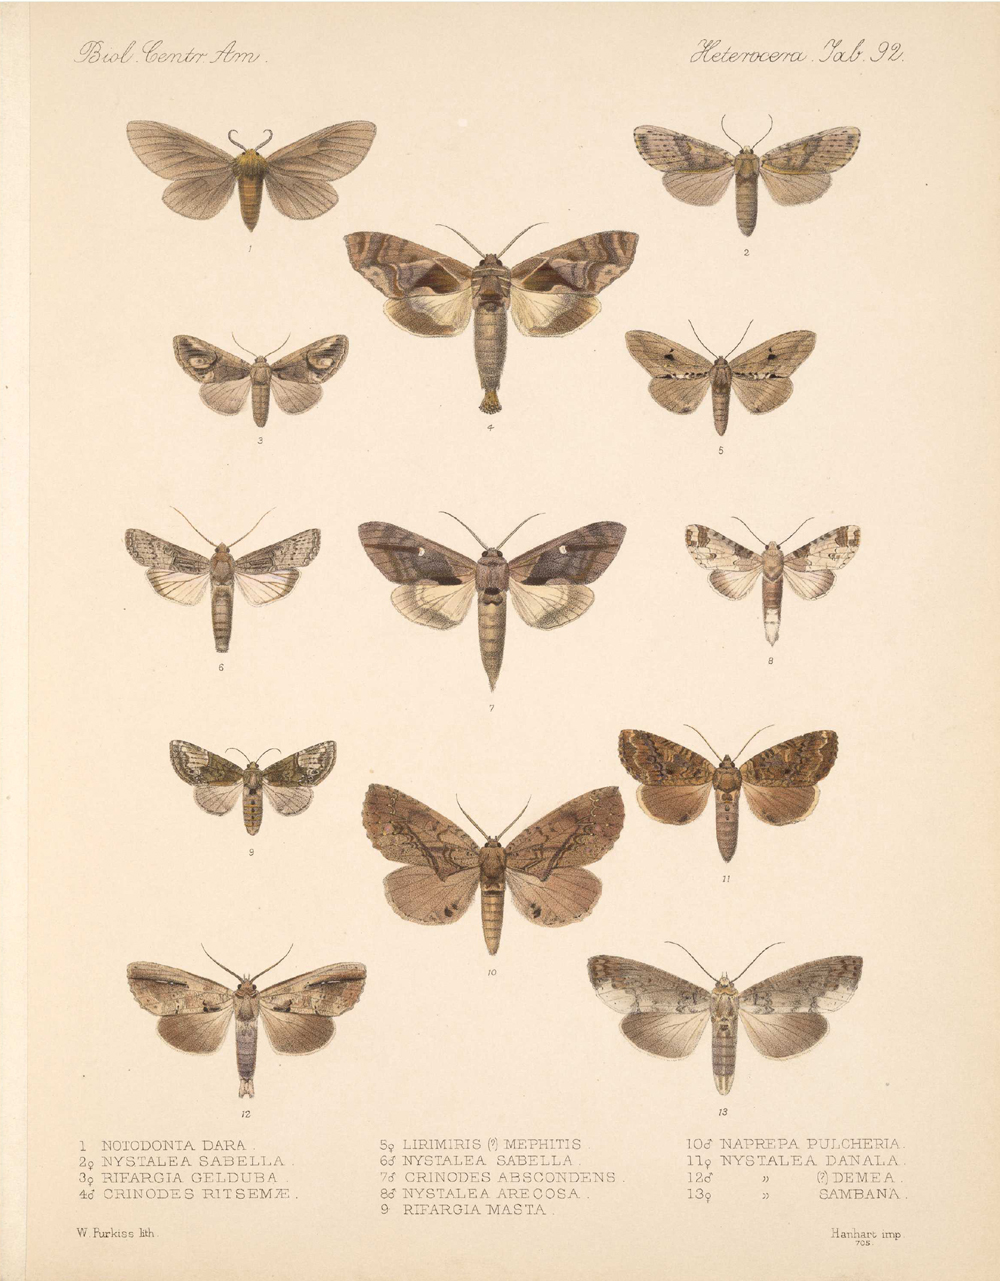 Butterflies and Moths,  Image number:bca_15_03_00_102